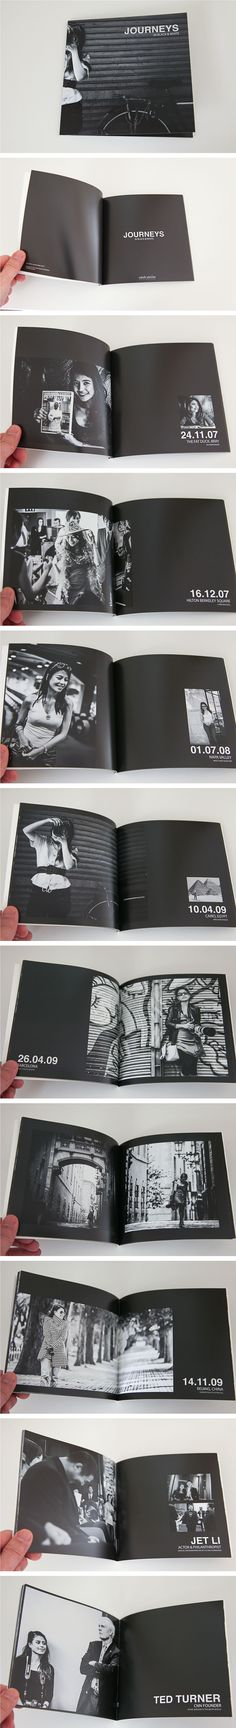 Schwarz Weiß Fotobuch A photobook in black and white - the ultimate in timeless elegance!